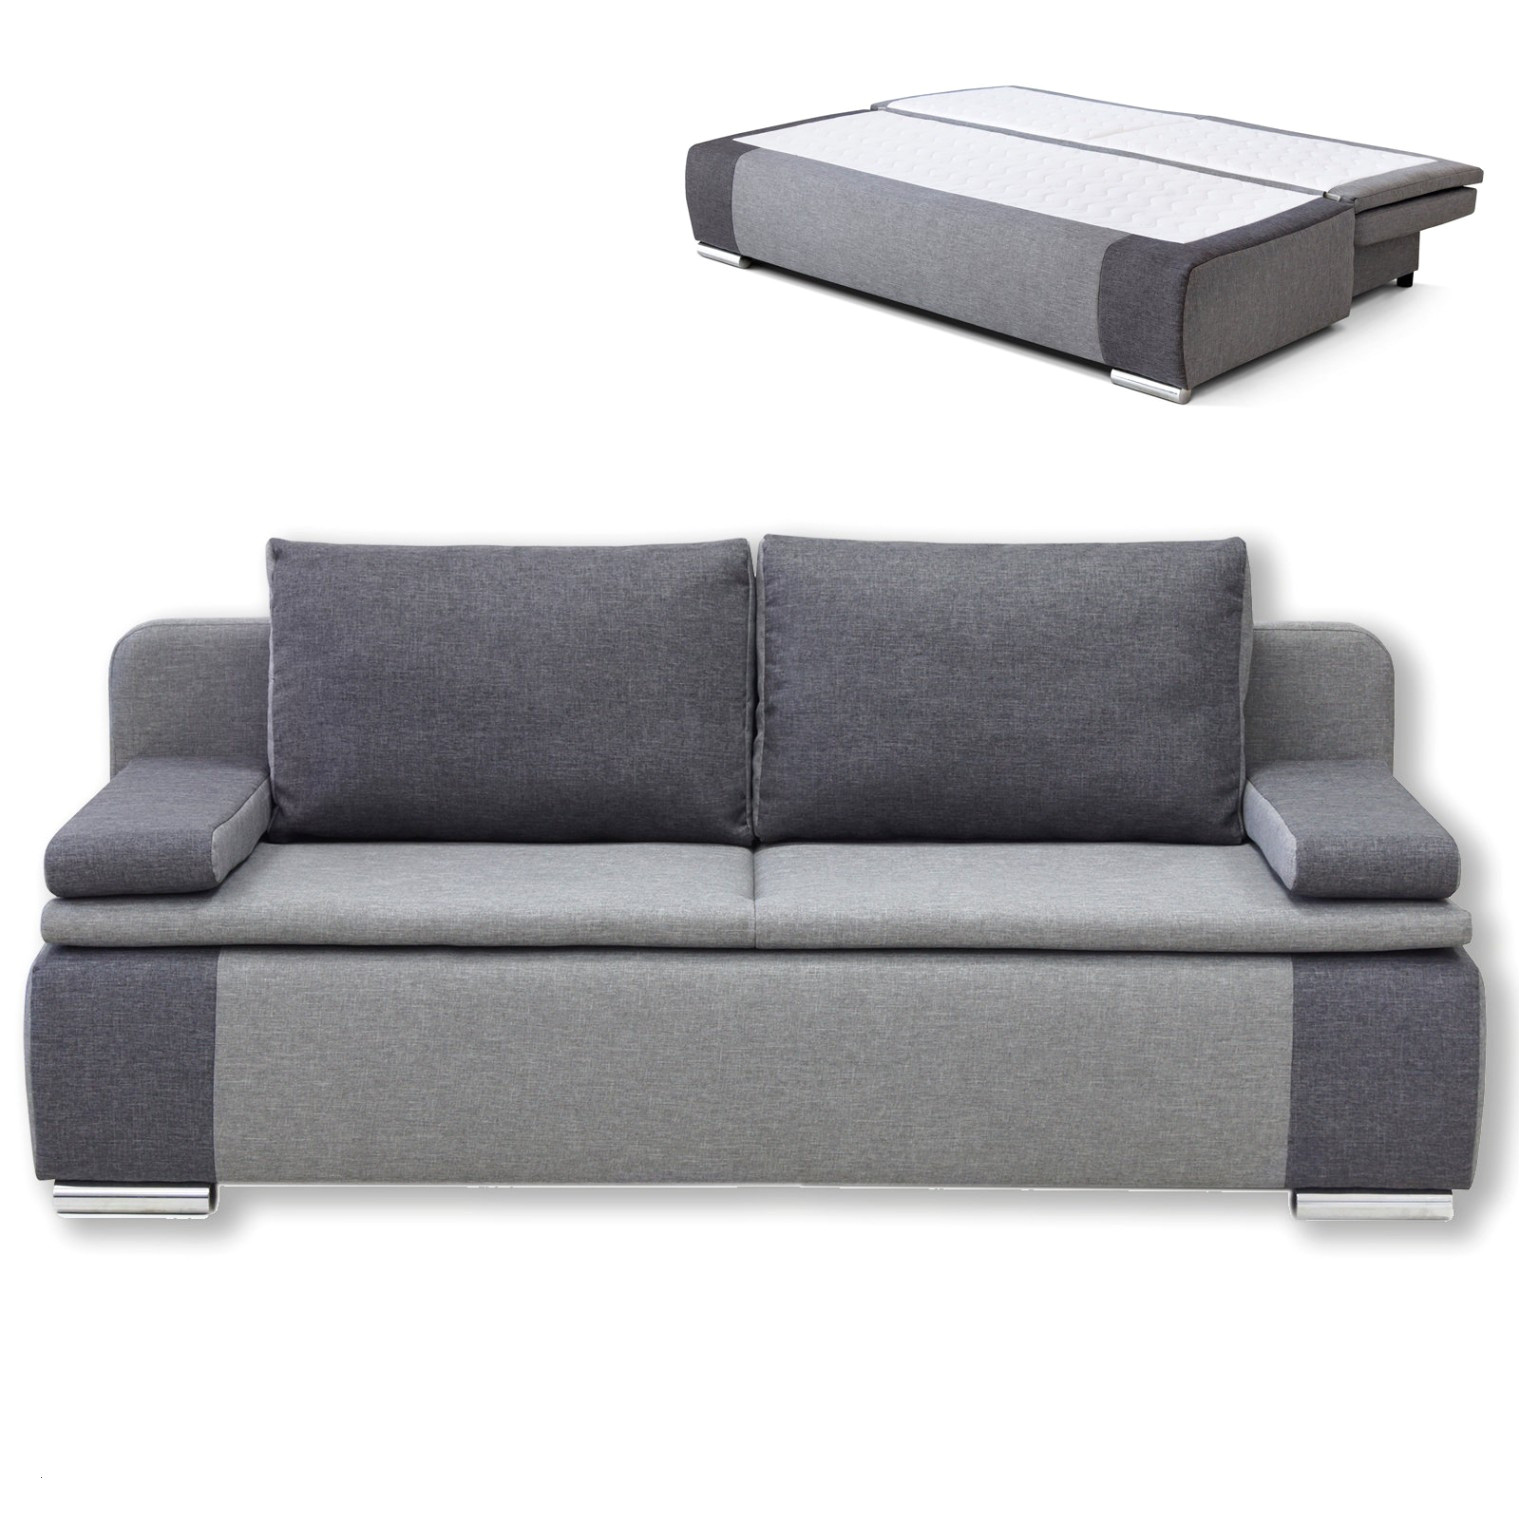 graues schlafsofa inspirierend graues schlafsofa serta meredith convertible sofa lovely awesome build a sofa build a